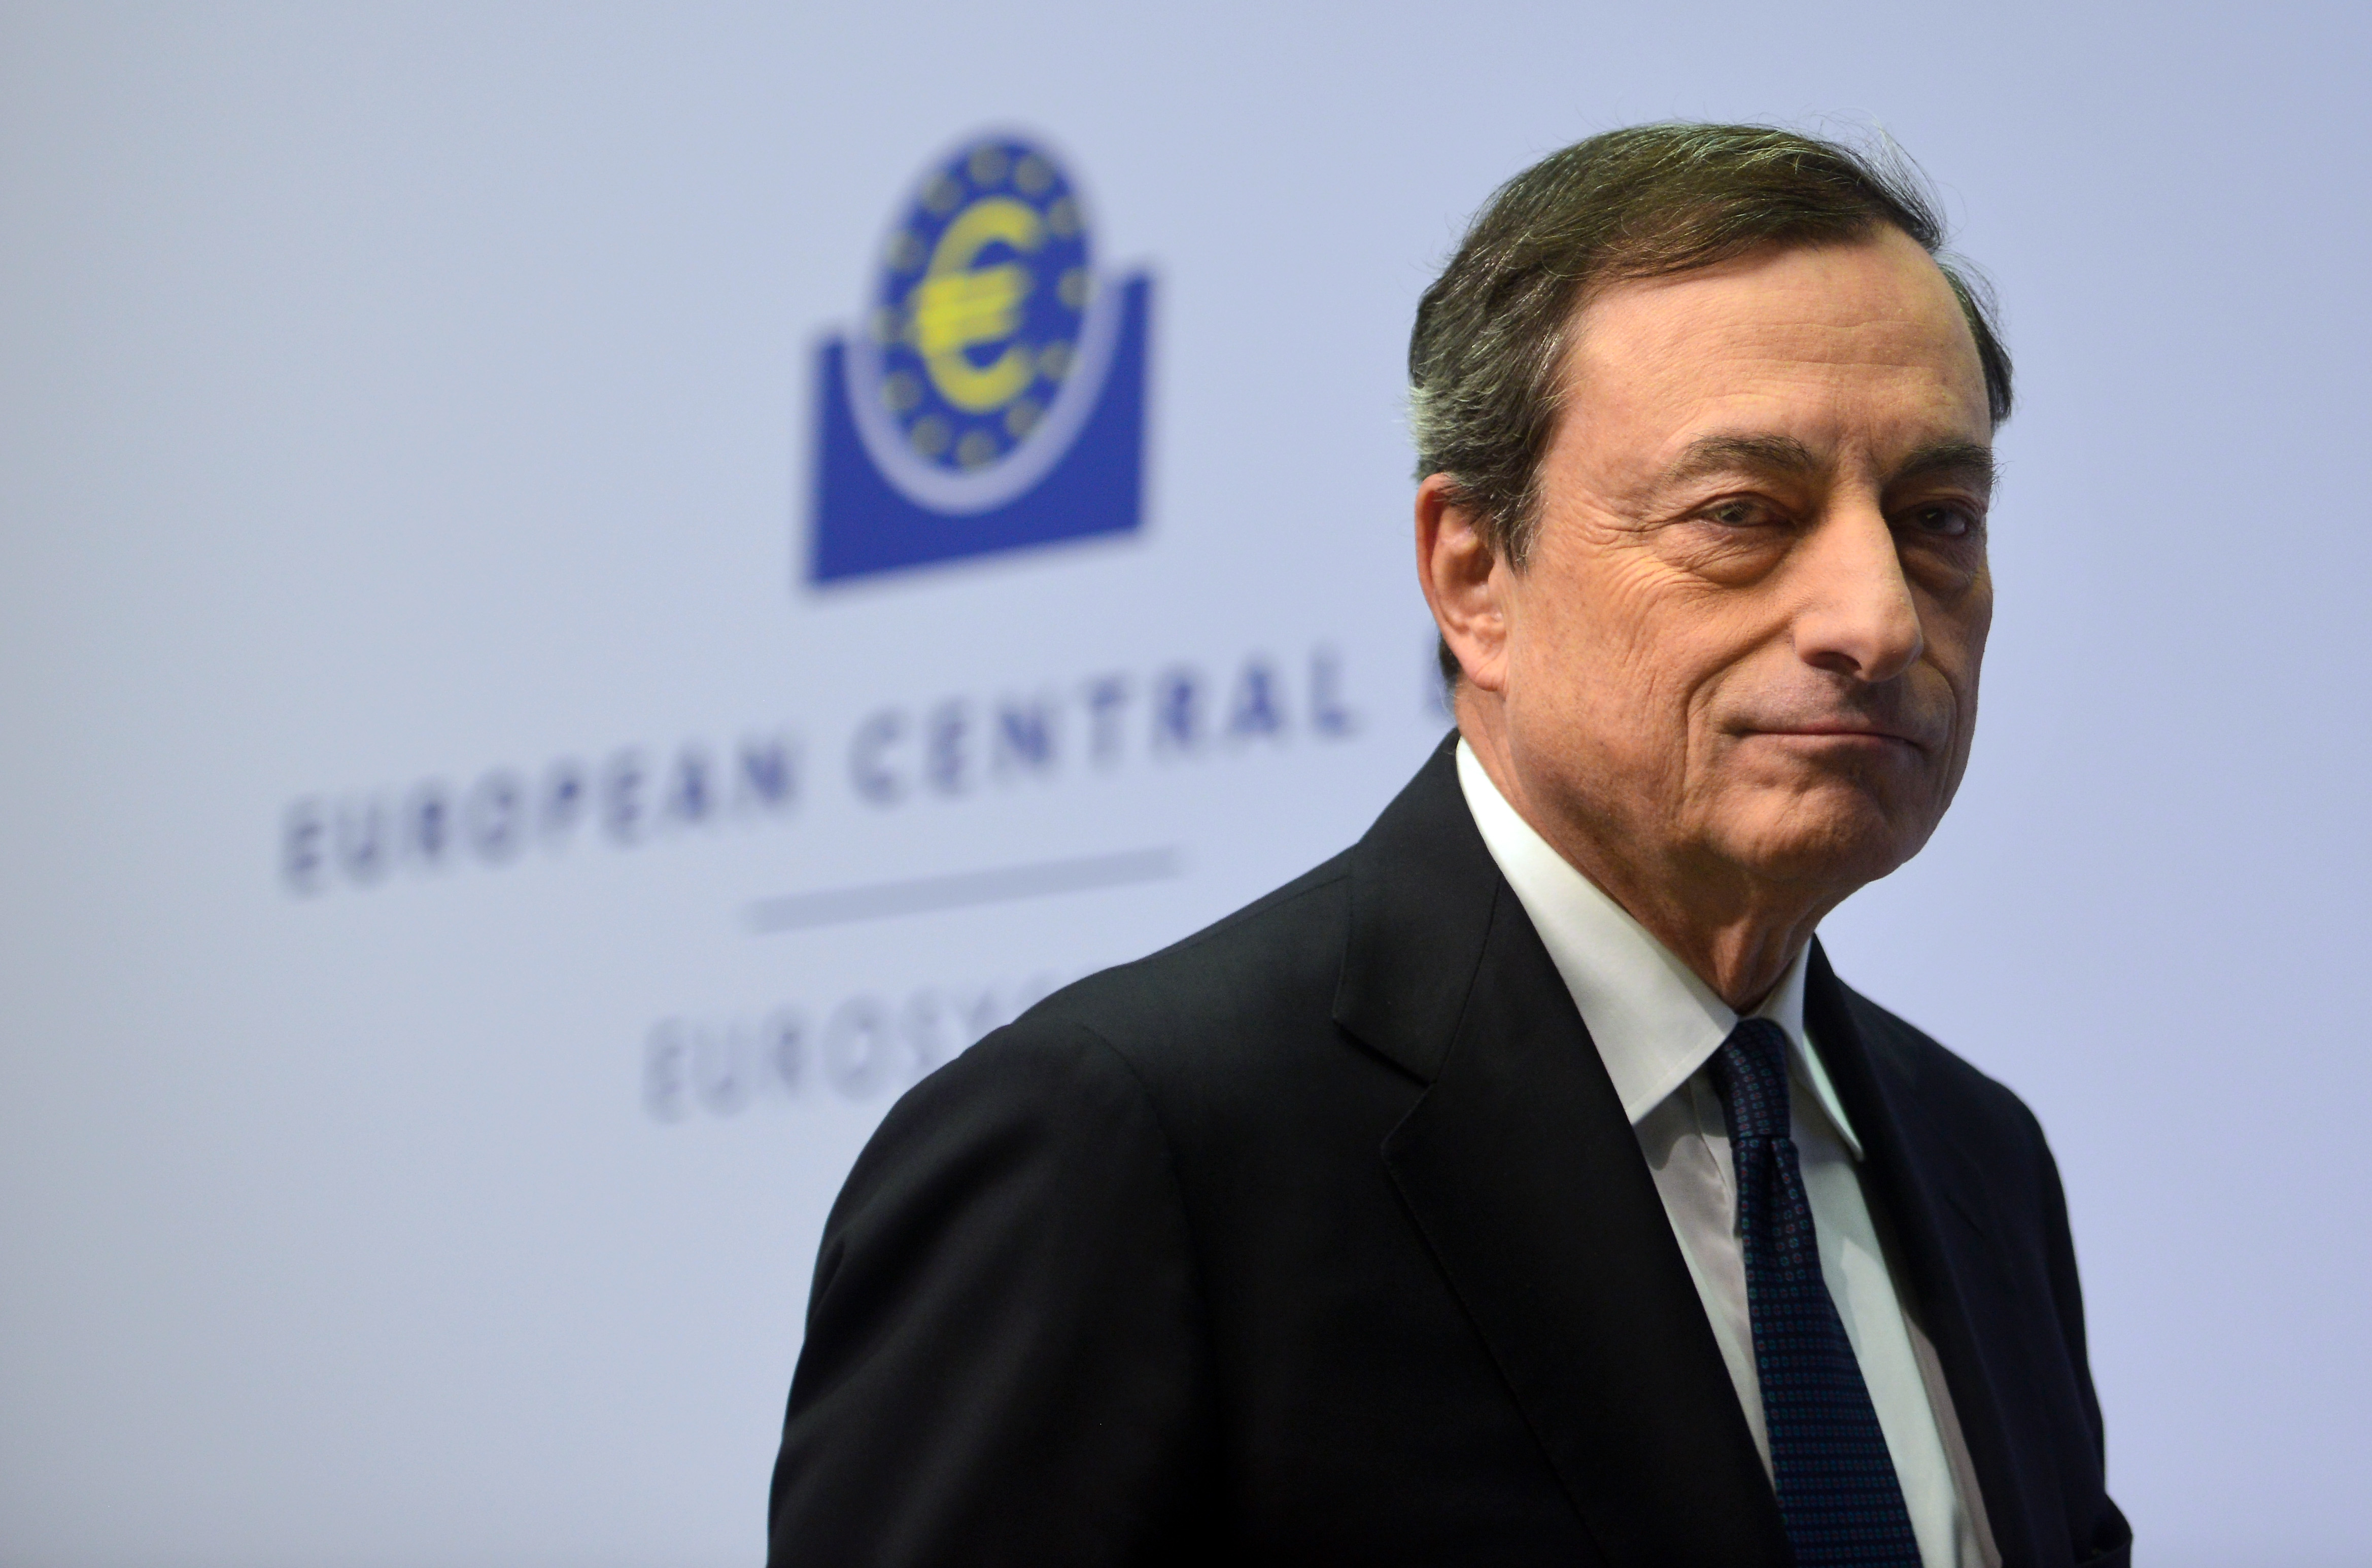 Mario Draghi, politiche monetarie a beneficio dell'Eurozona